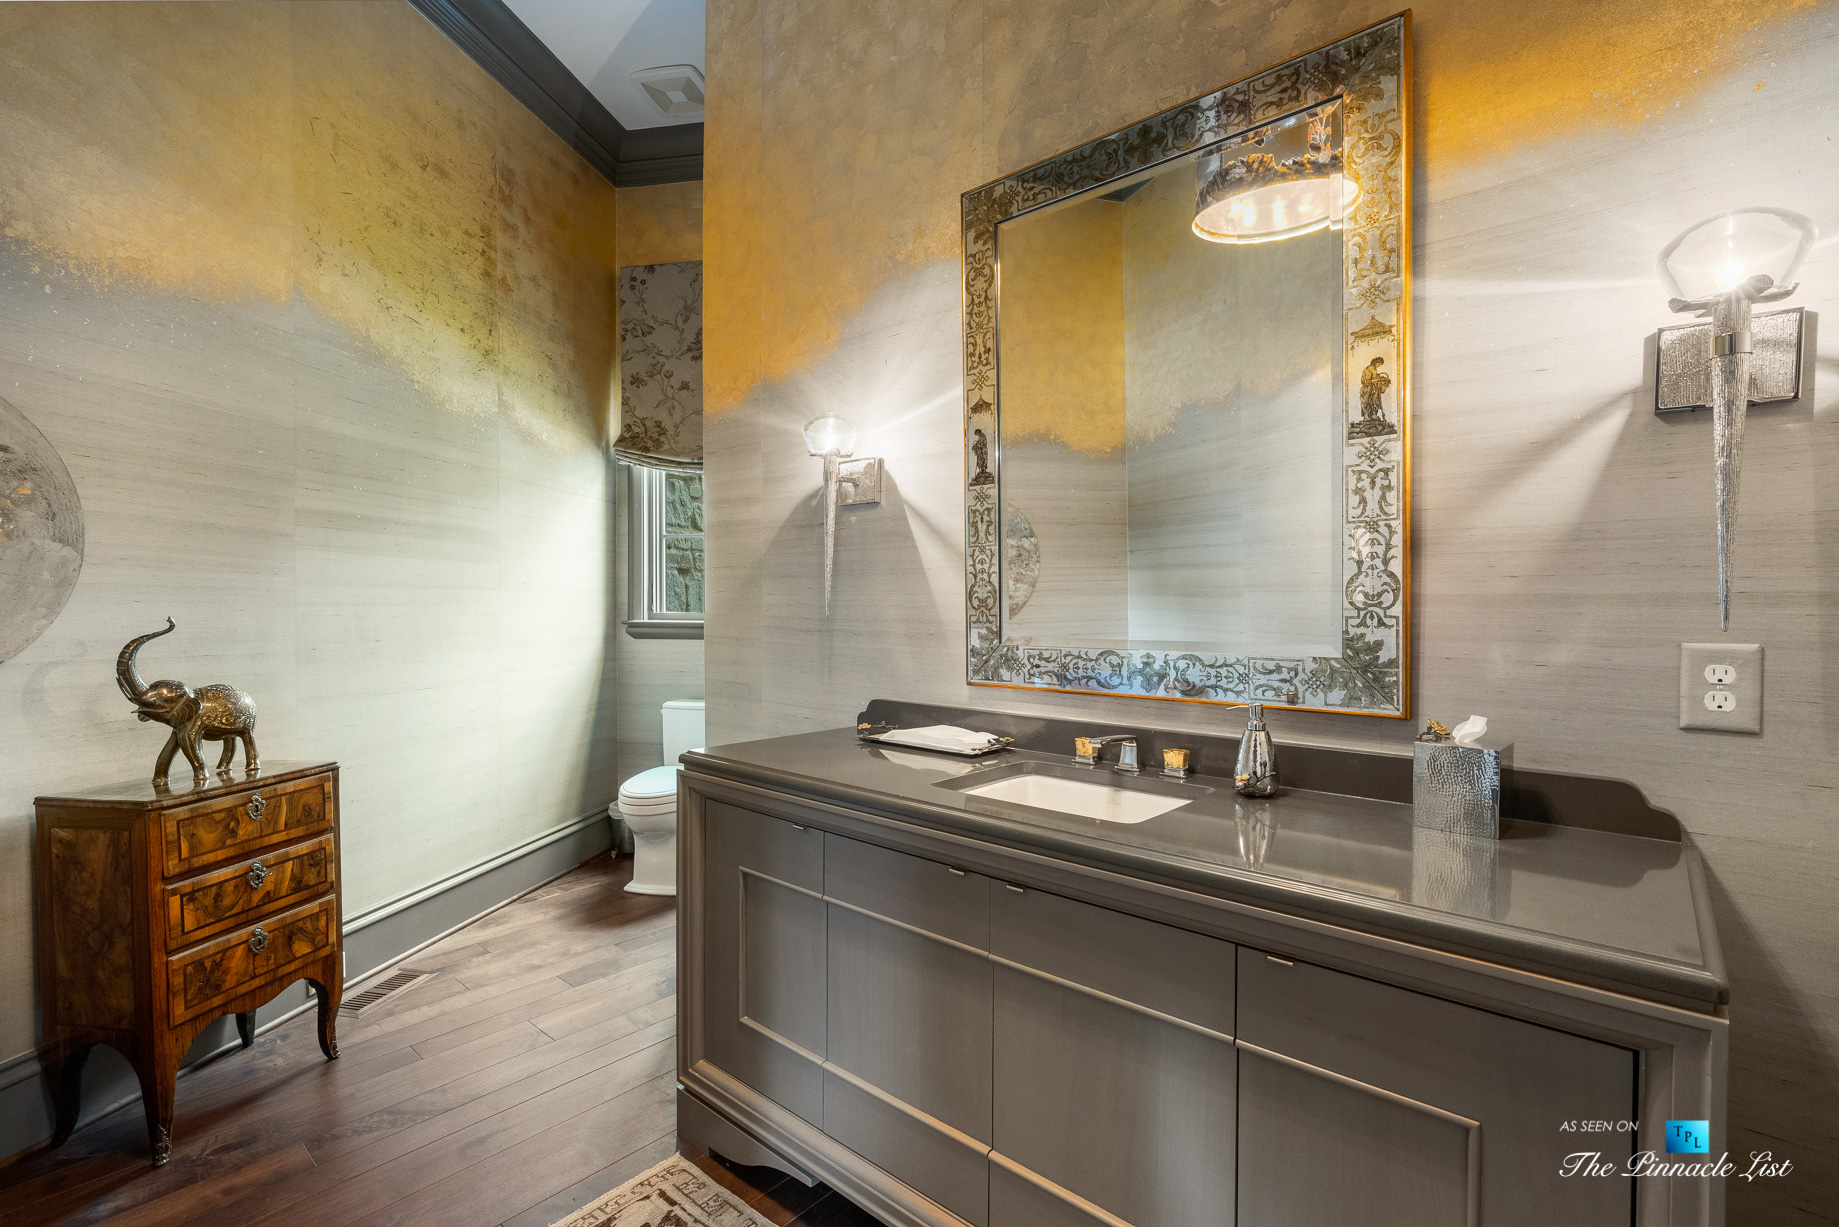 1150 W Garmon Rd, Atlanta, GA, USA – Luxurious Washroom – Luxury Real Estate – Buckhead Estate Home